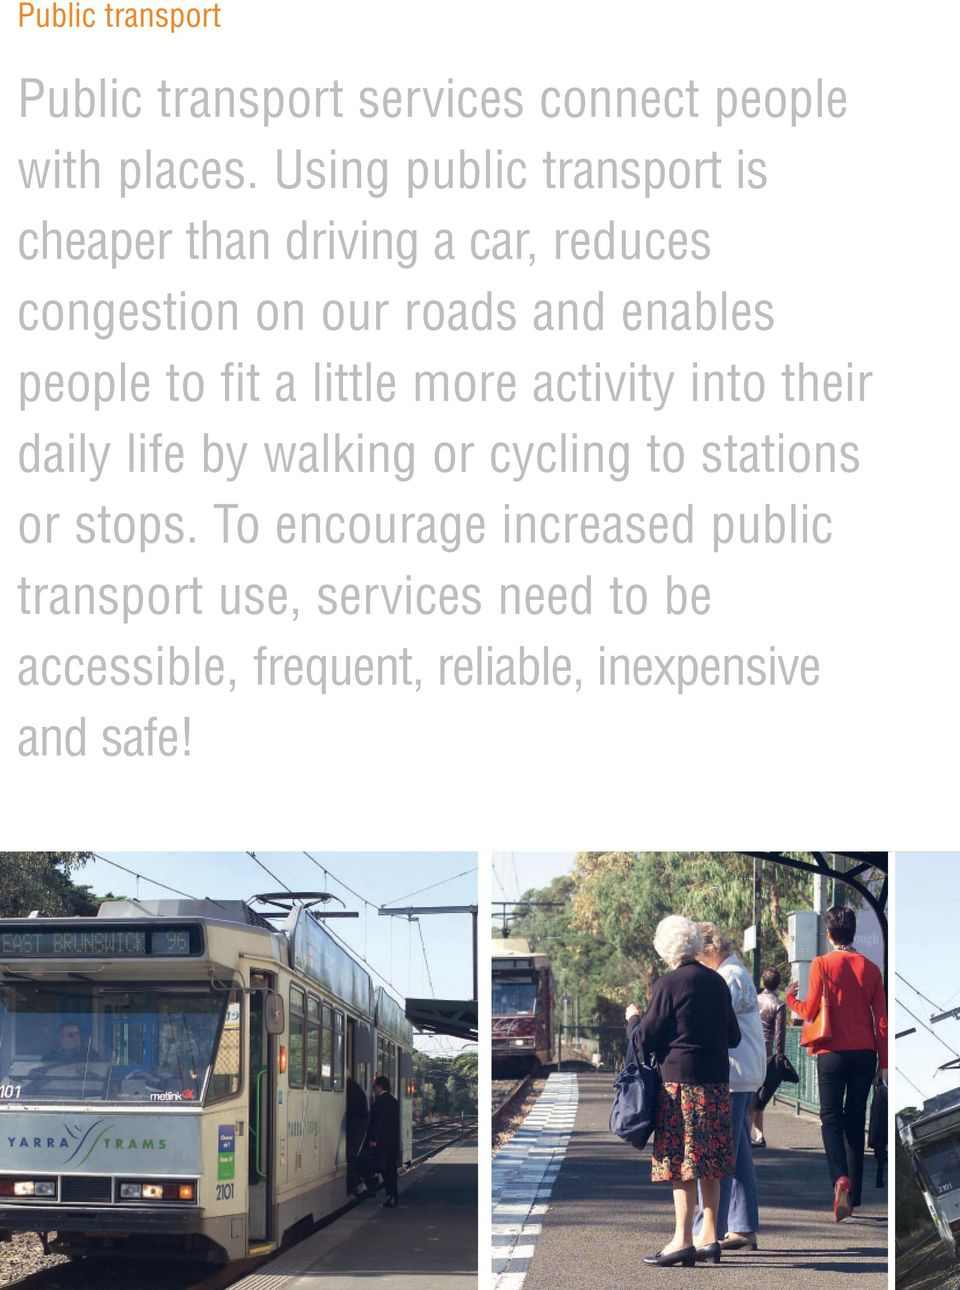 people to fit a little more activity into their daily life by walking or cycling to stations or